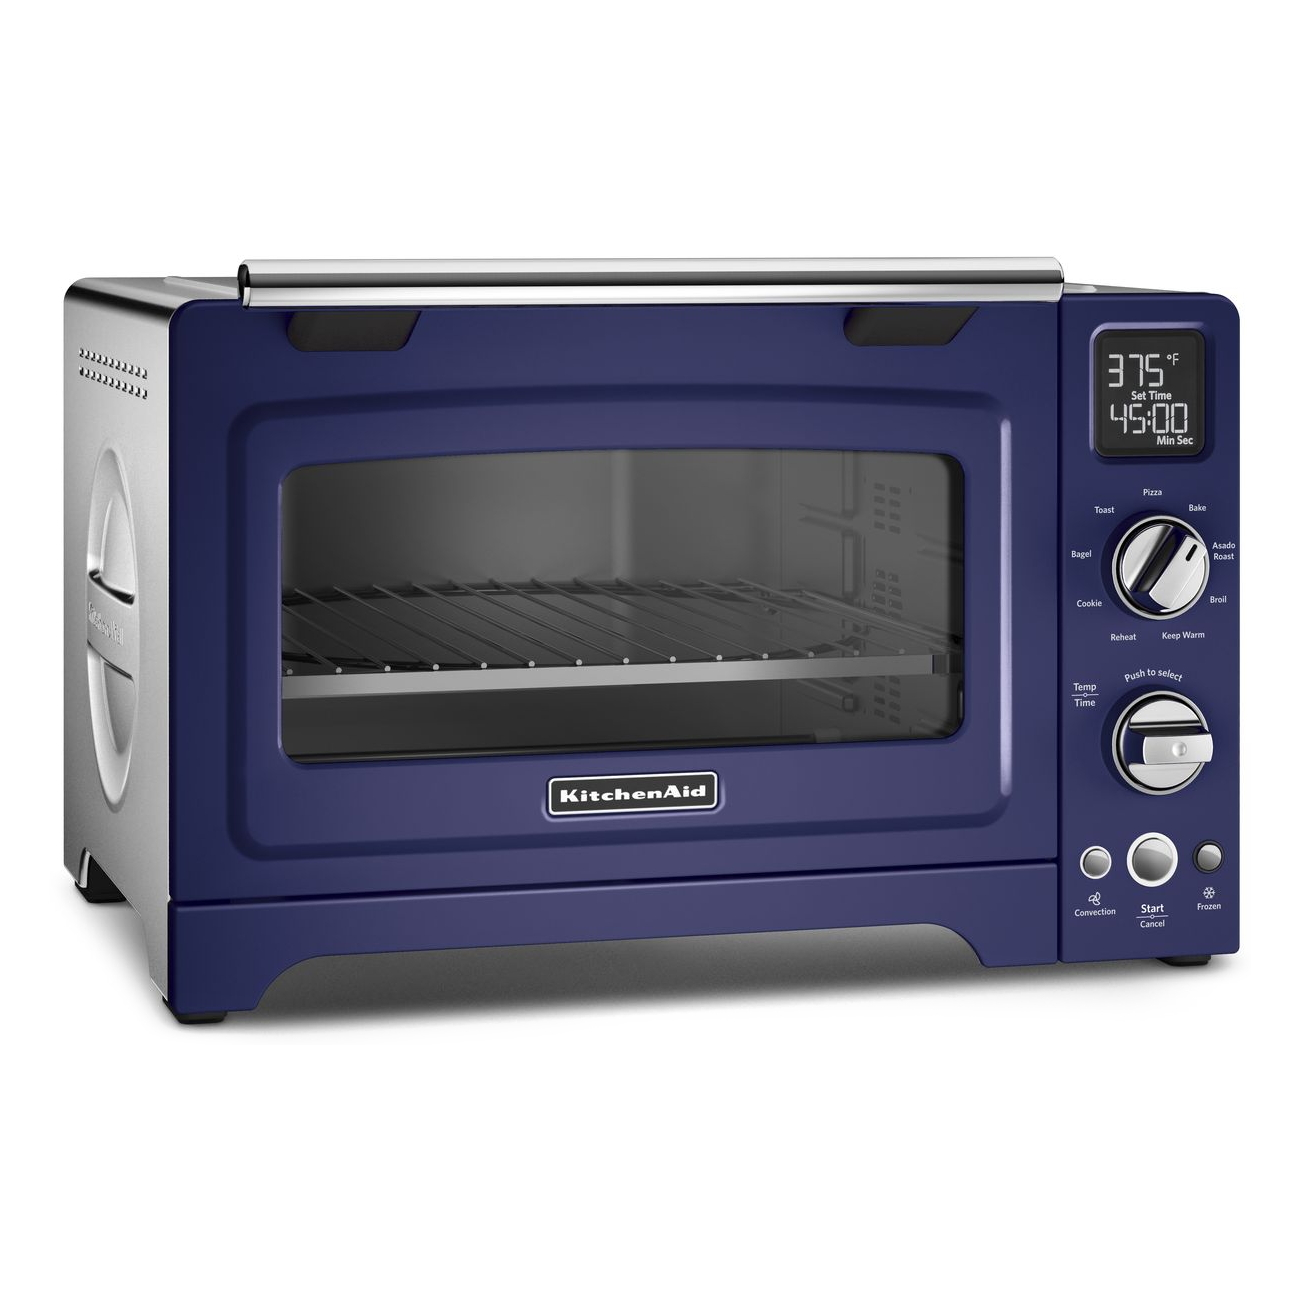 KitchenAid Cobalt Blue Digital Convection Oven